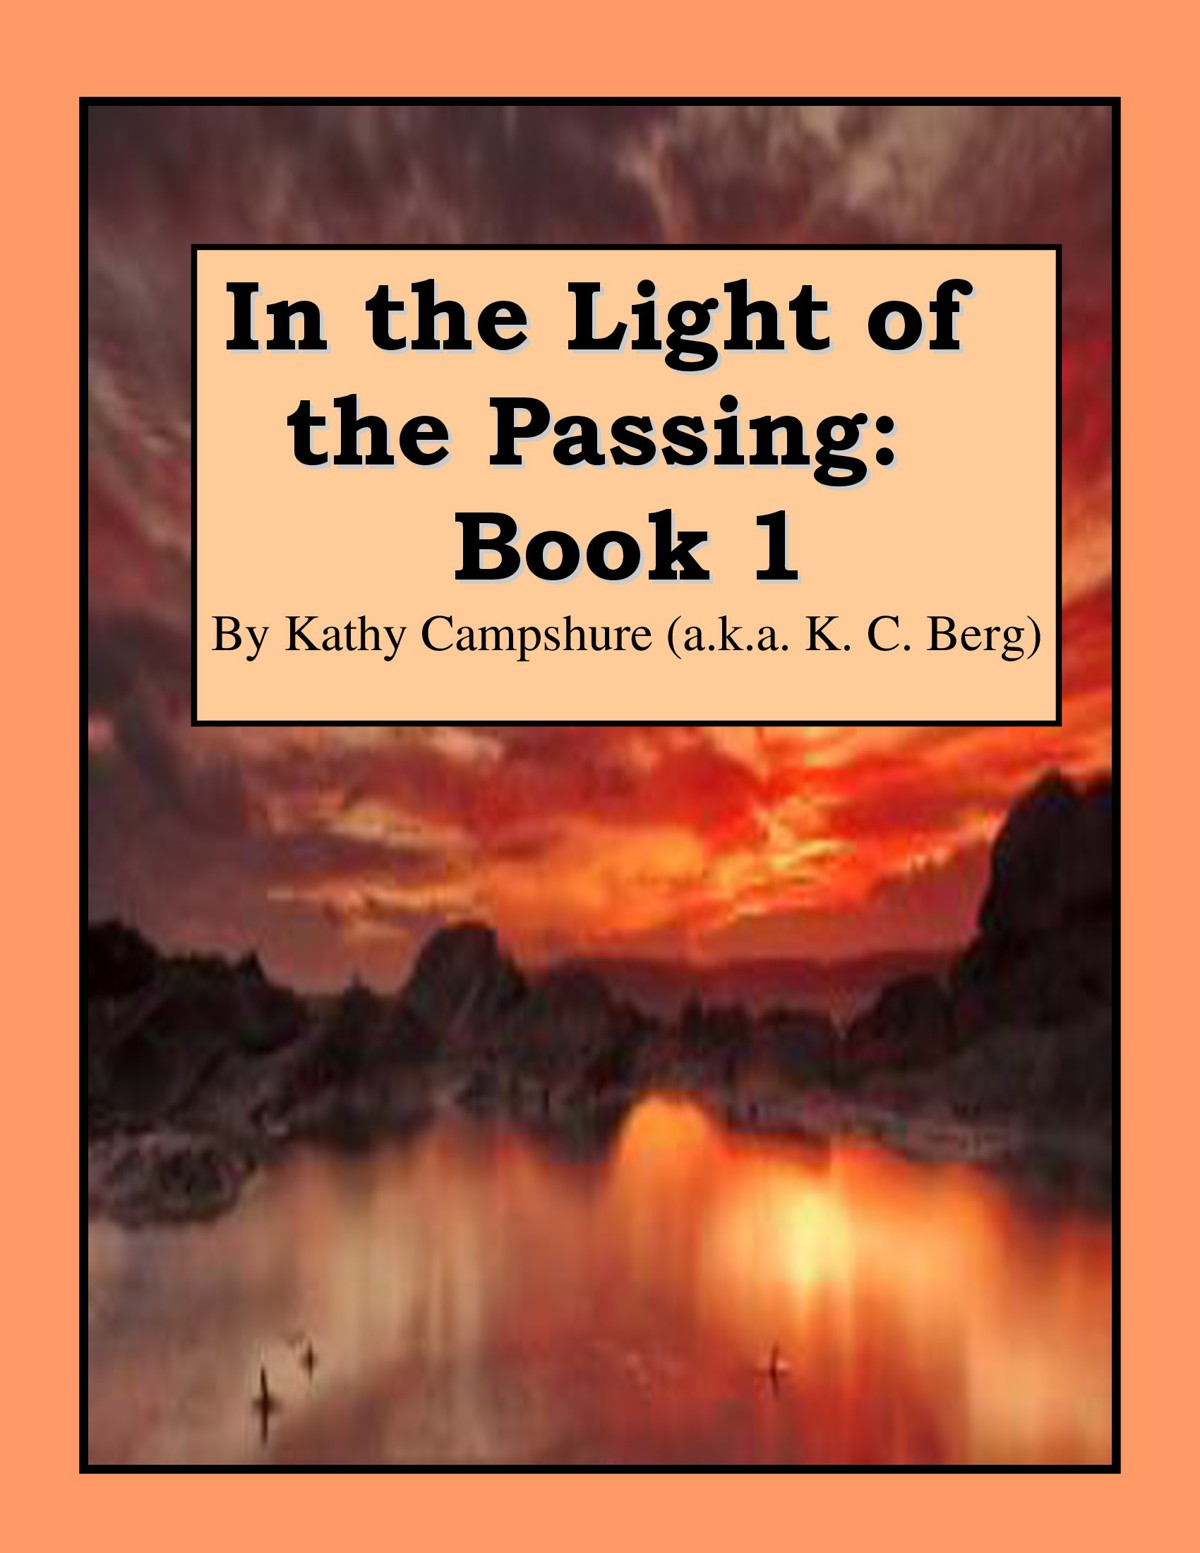 In the Light of the Passing: Book 1